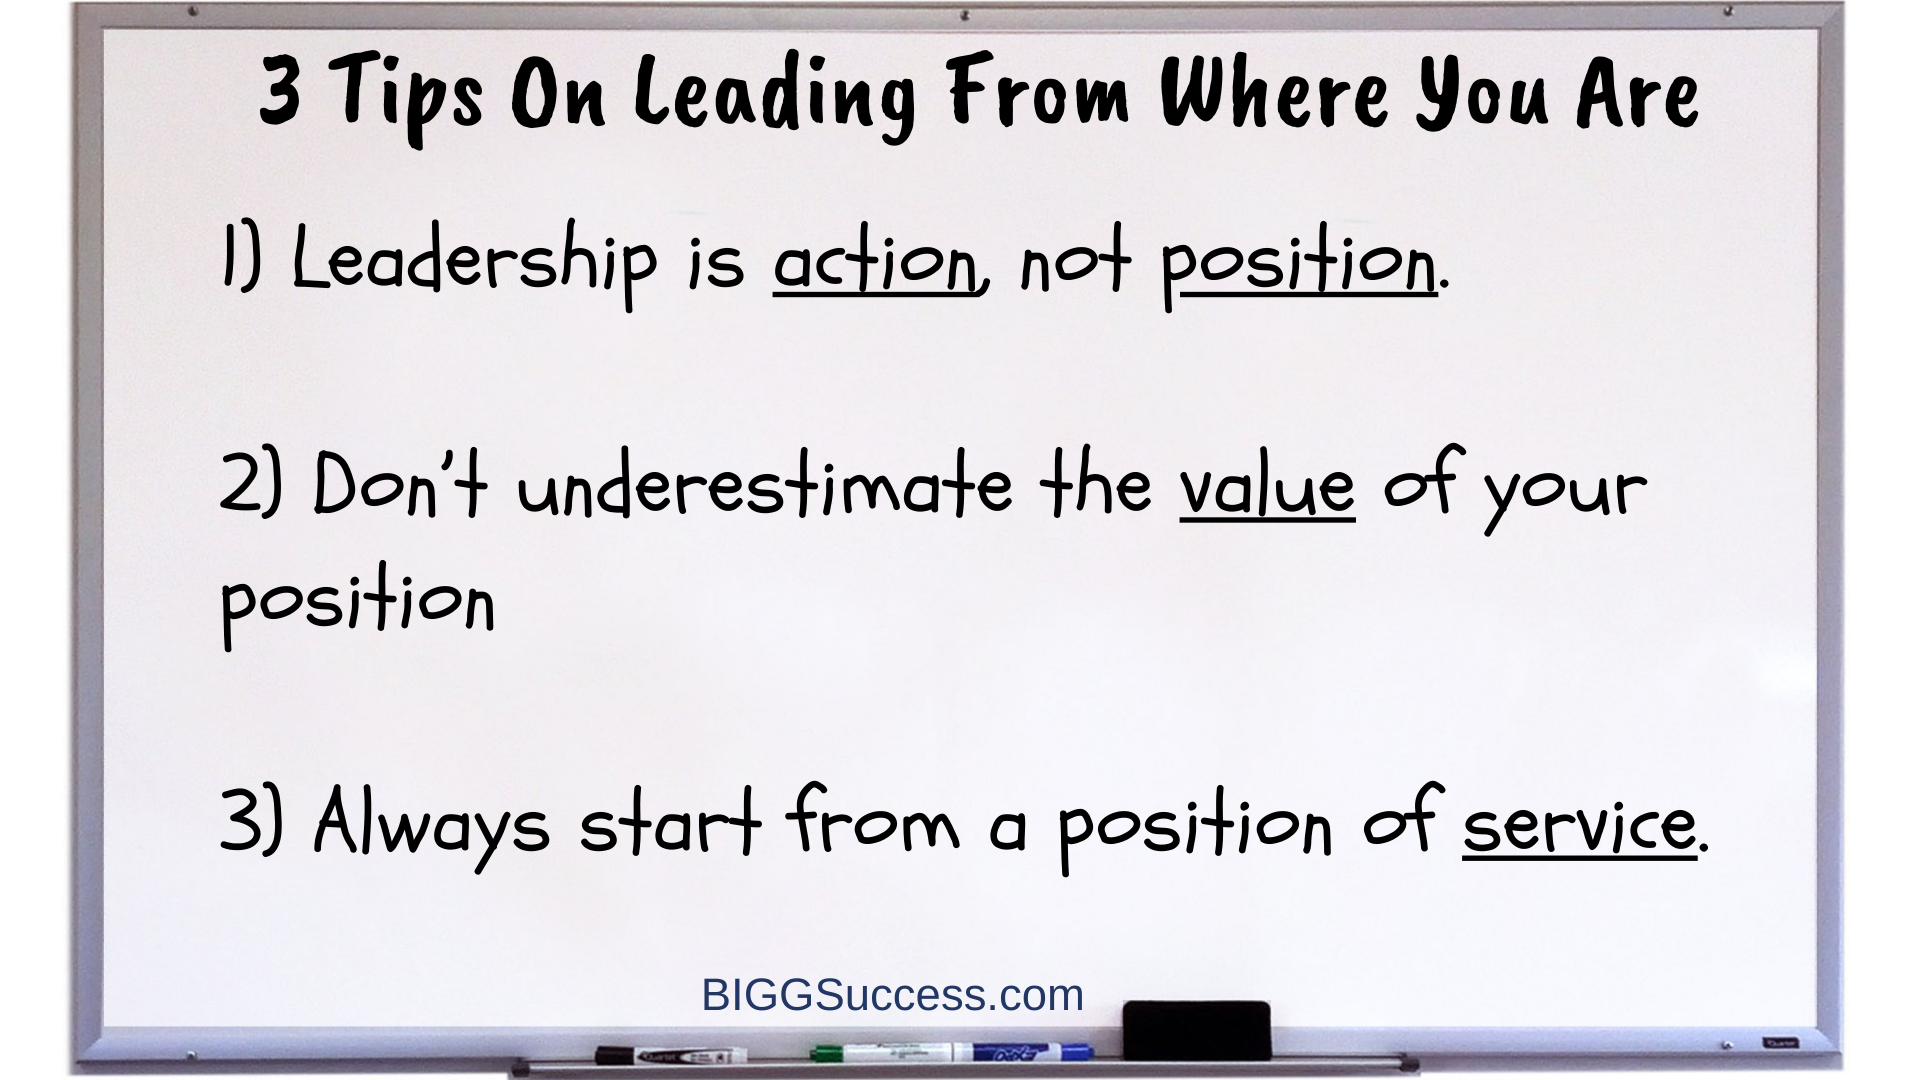 Whiteboard 1059-3 Tips On Leading From Where You Are